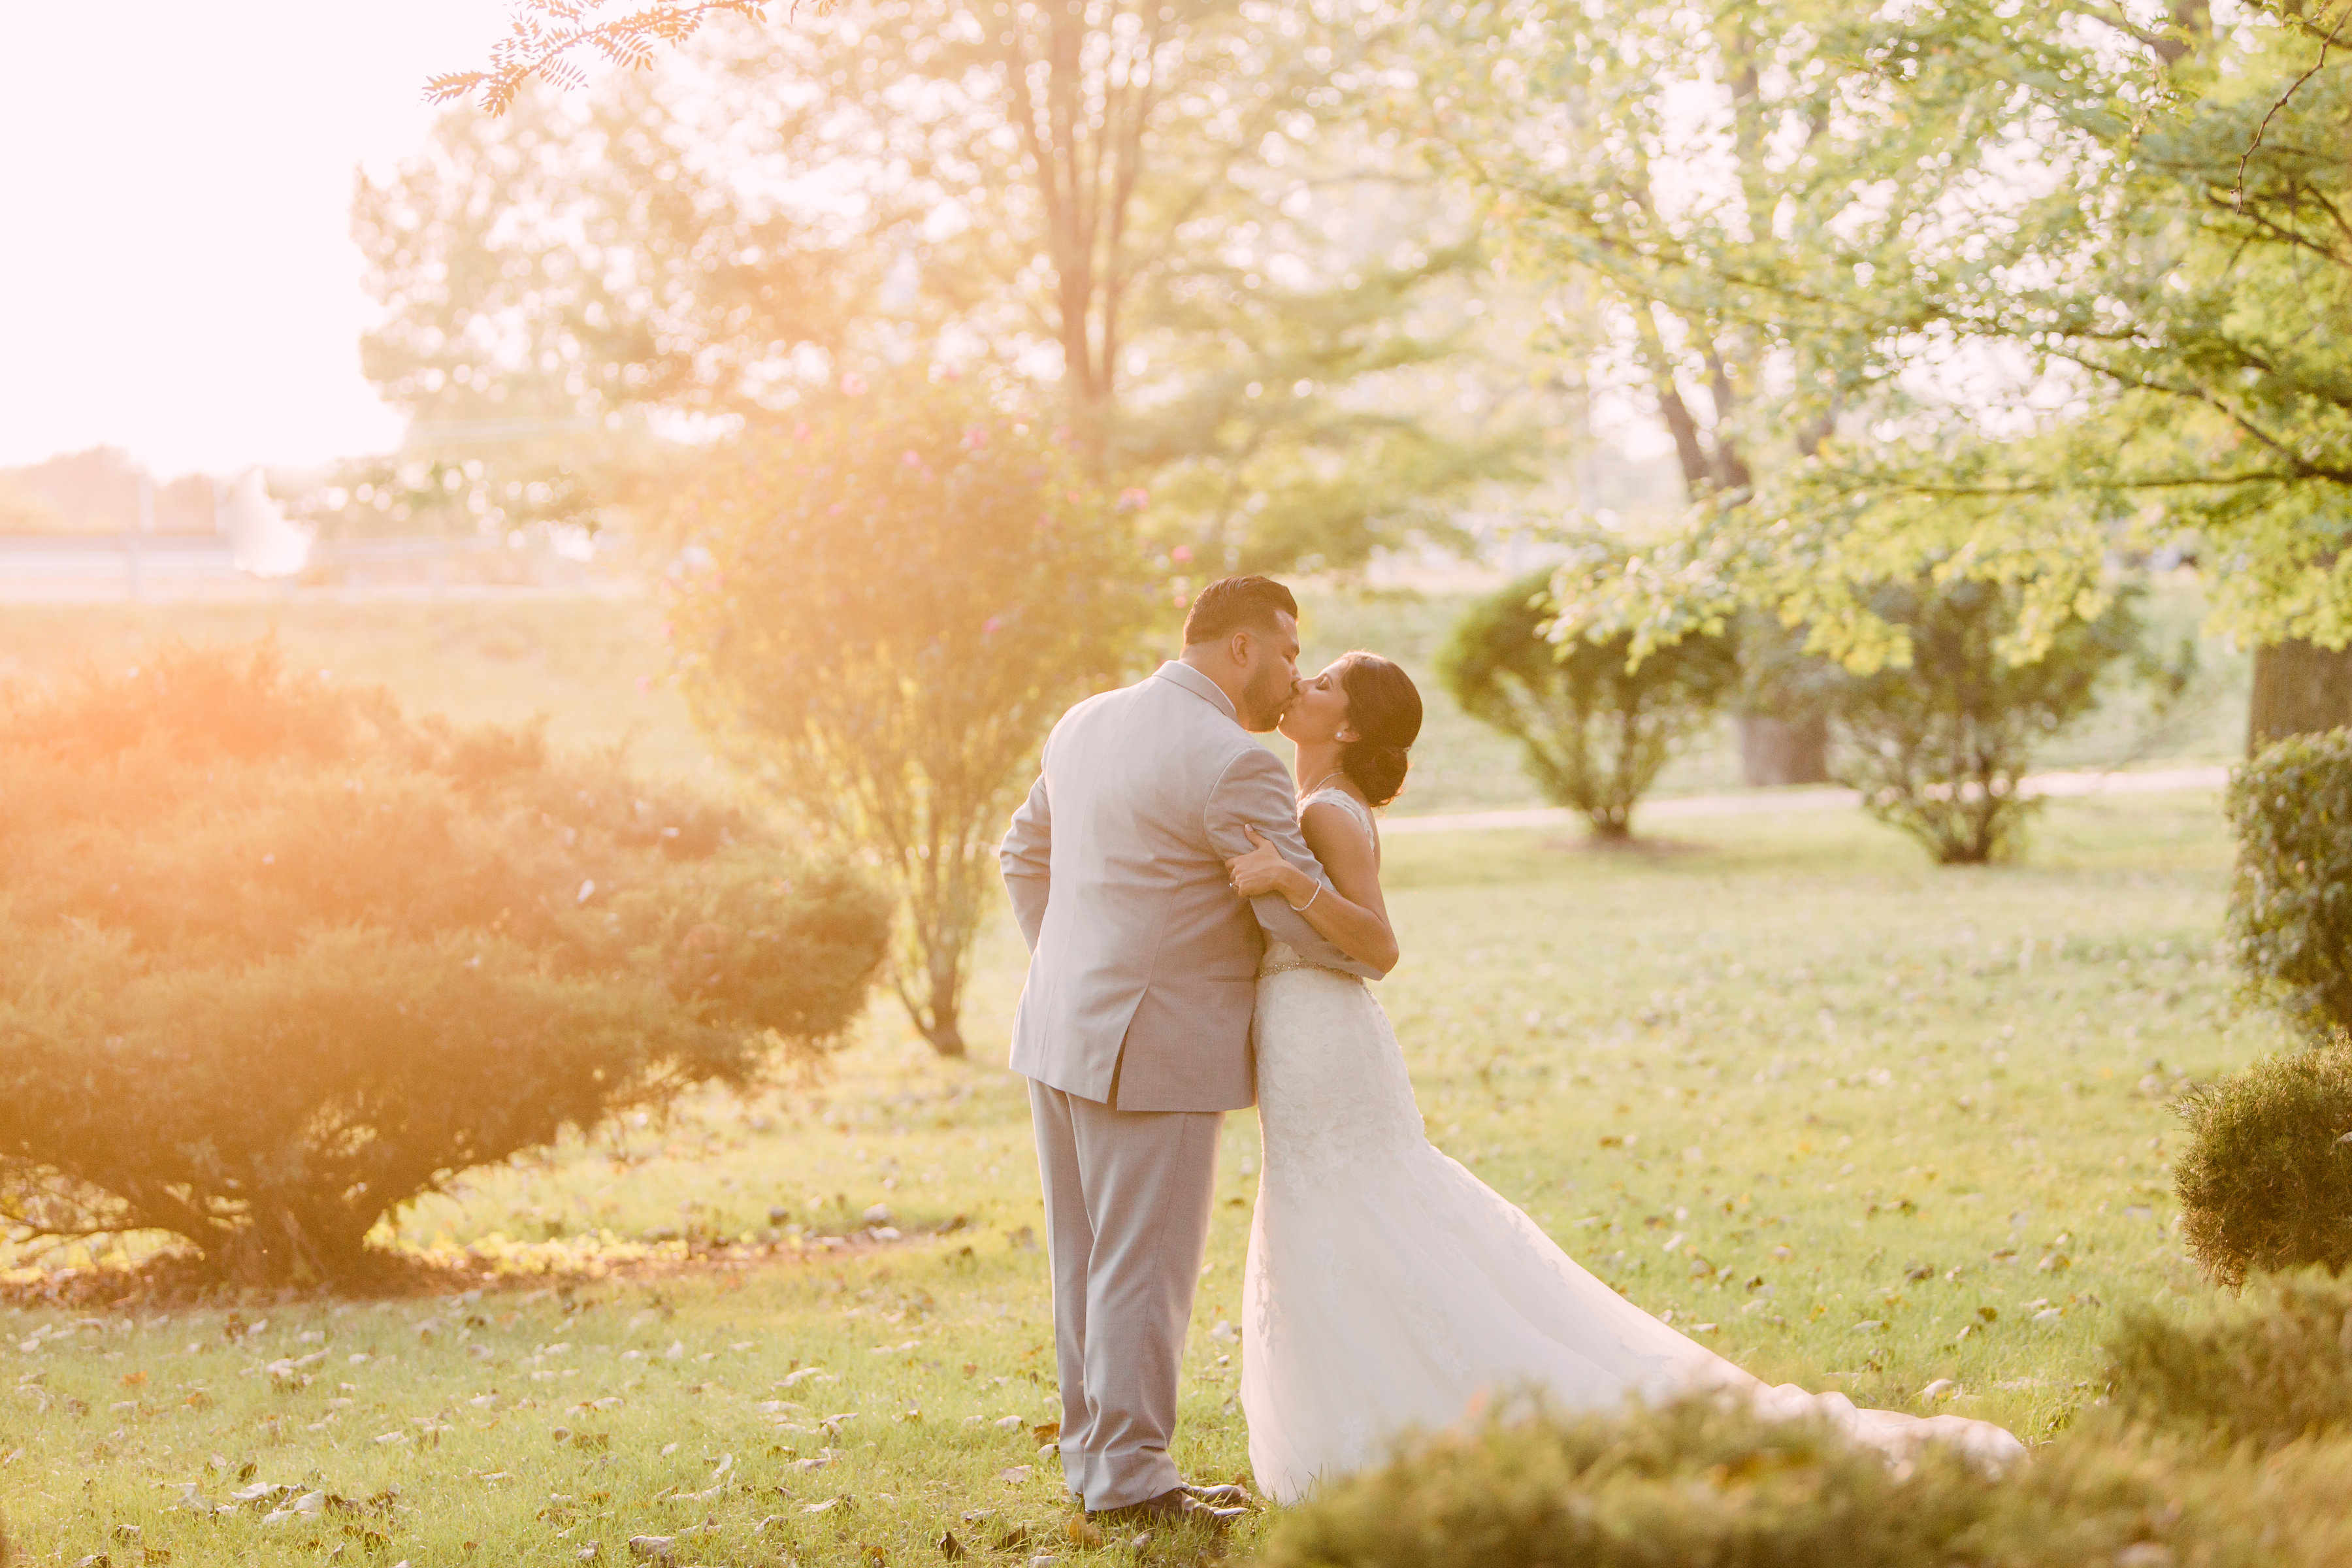 Tips for Posing for Wedding Photos Photography by Lauryn (5)